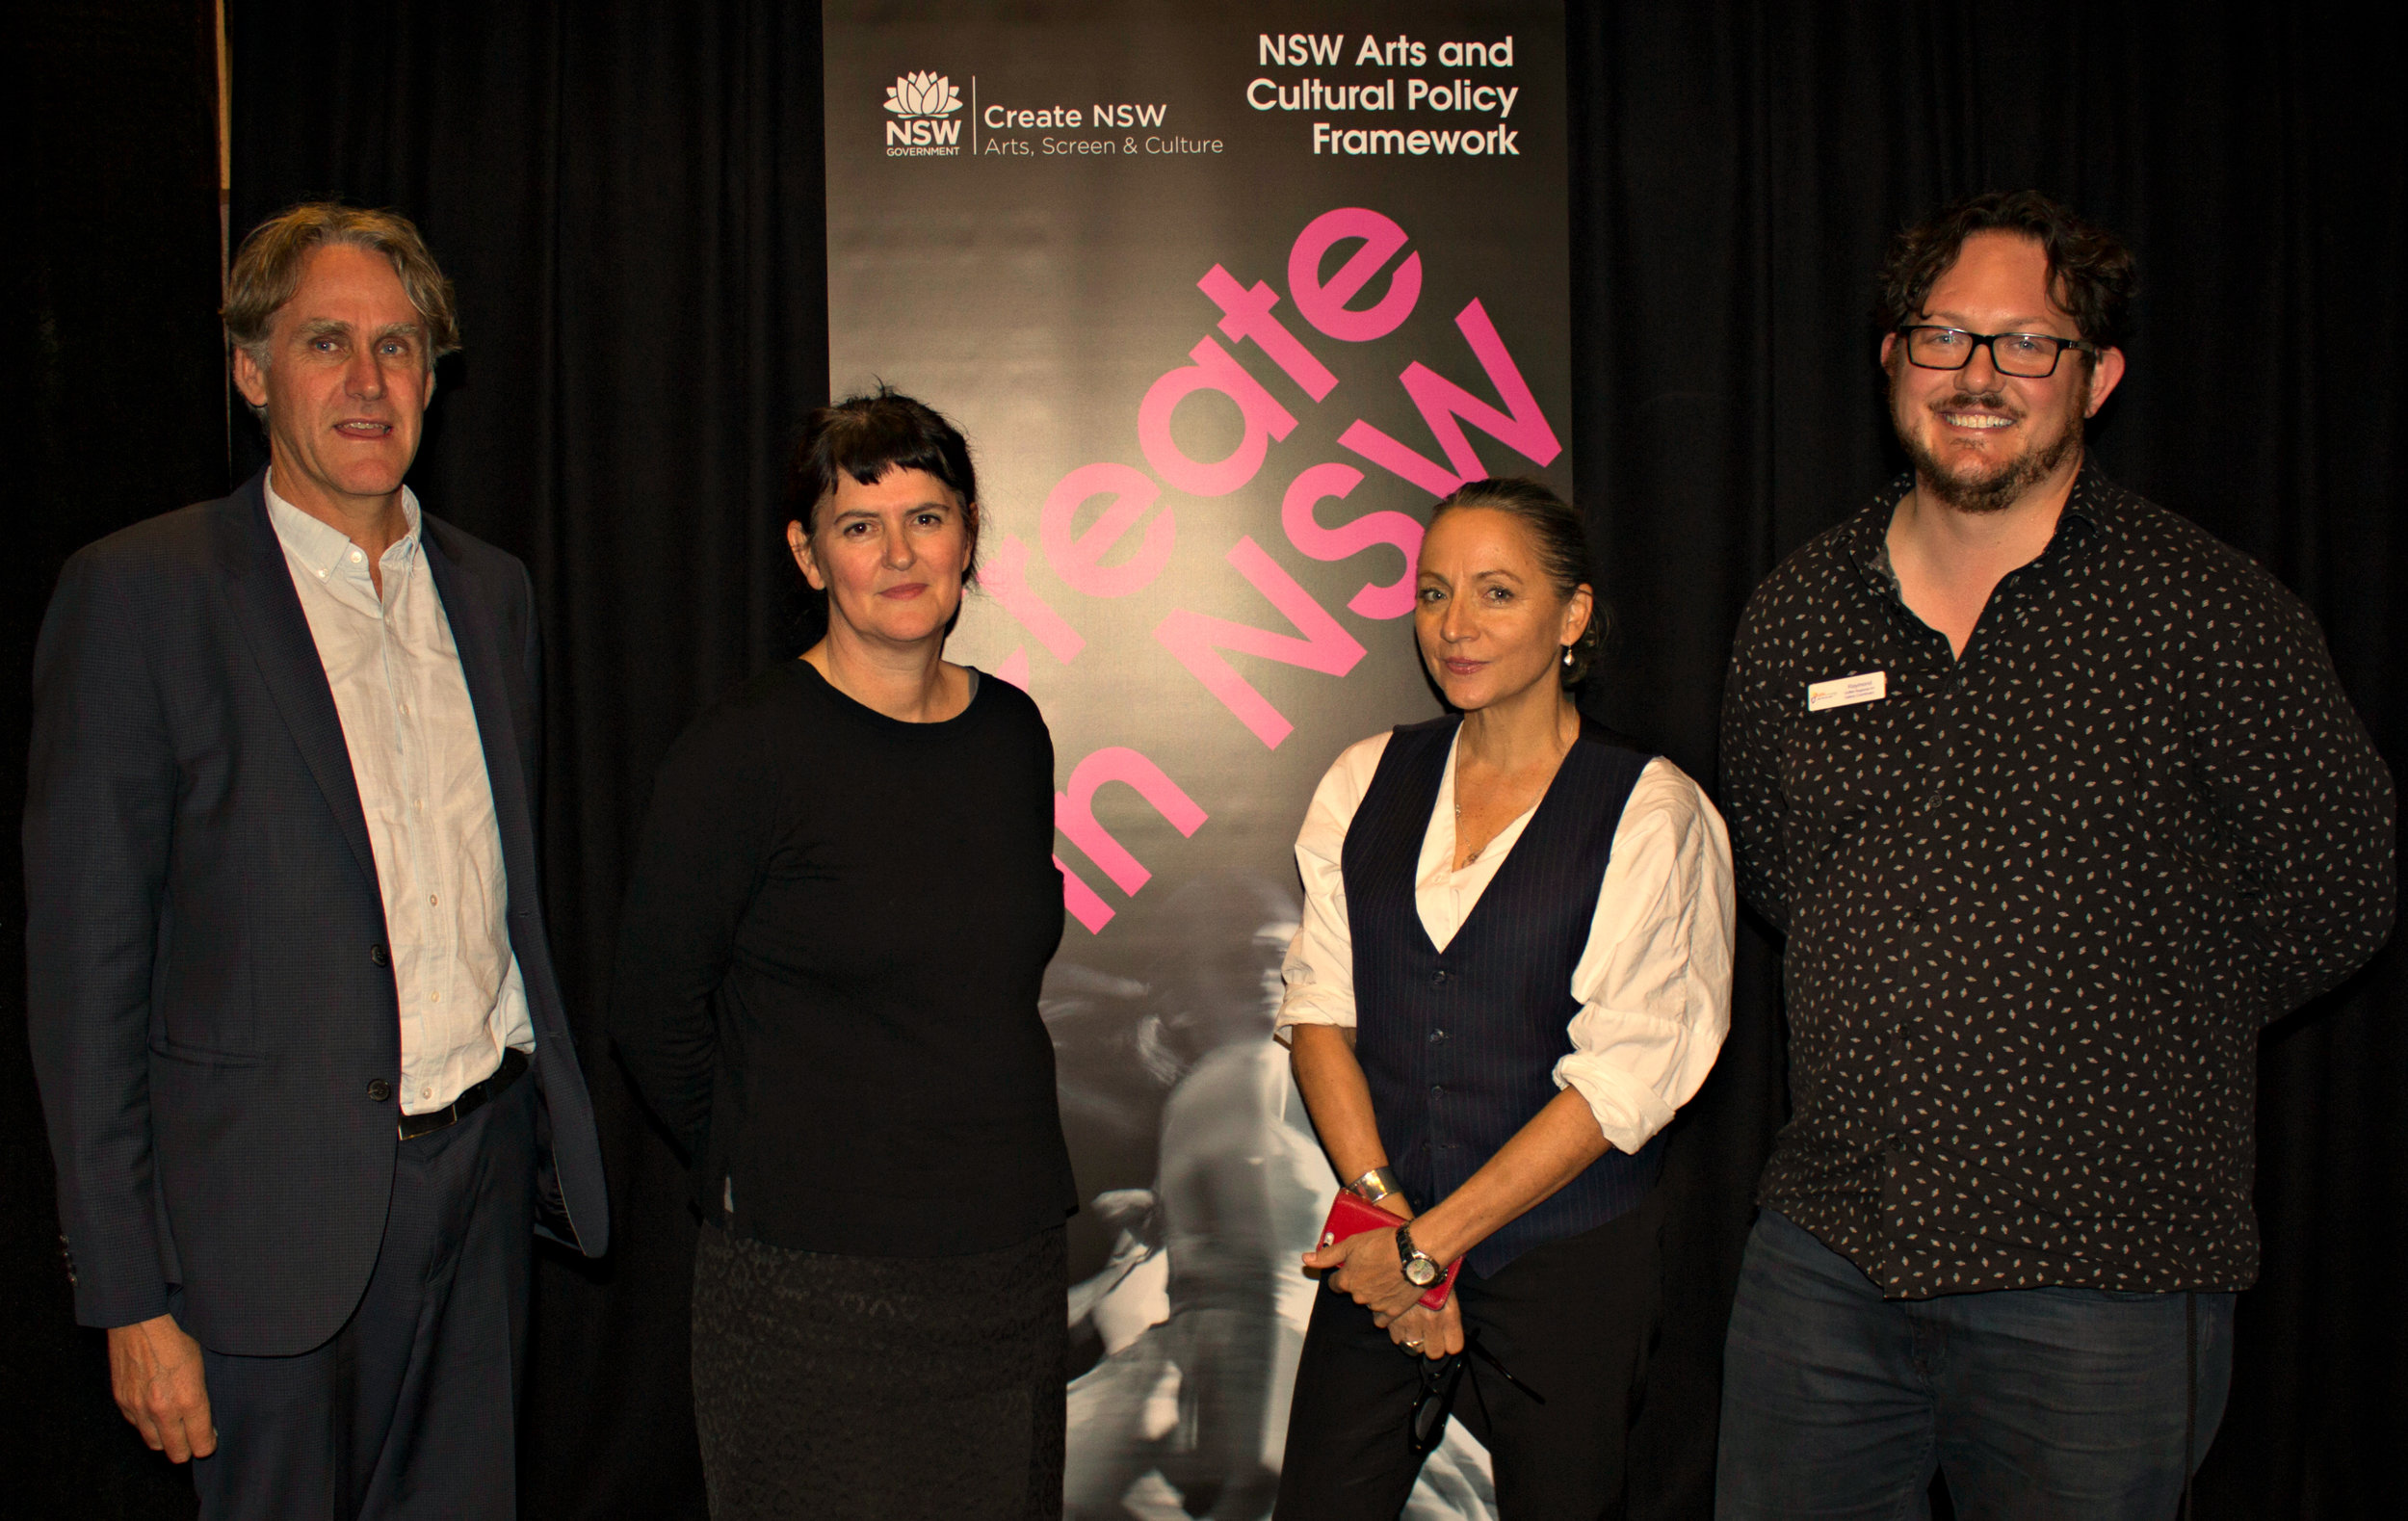 Create NSW experts David Everist, Sam Wild, and Andrea Ulbrick with Ray Wholohan, Coordinator Griffith Regional Art Gallery.